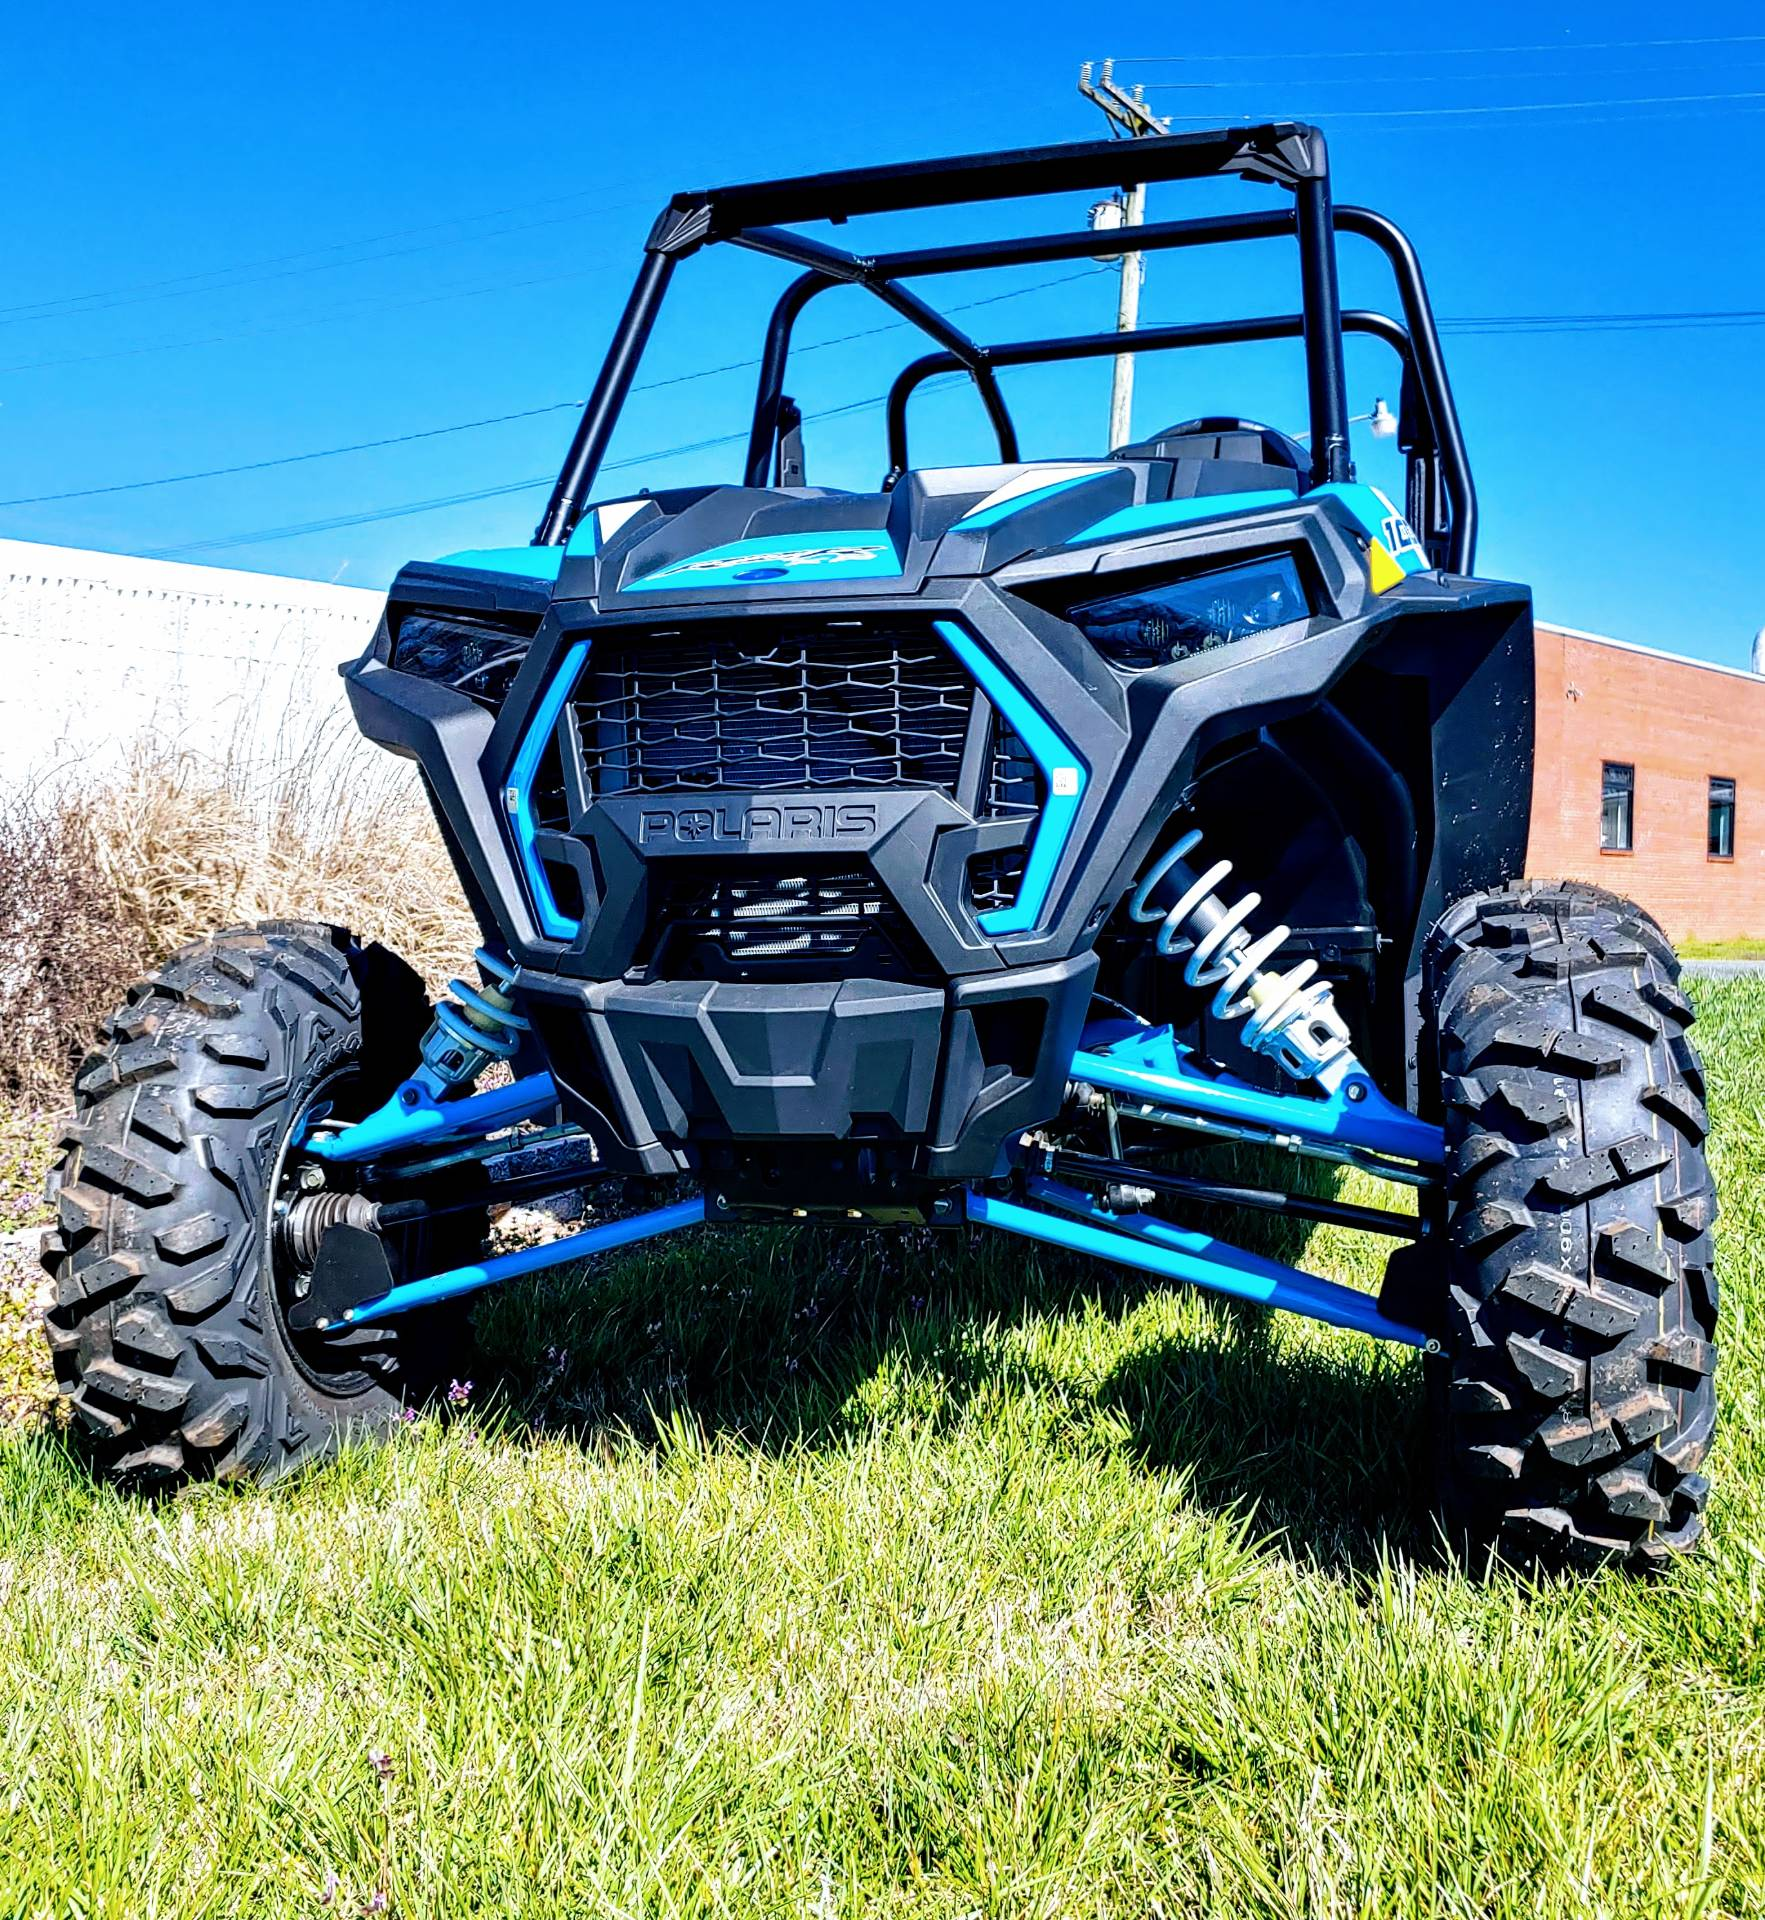 2019 Polaris RZR XP 4 1000 EPS in Statesville, North Carolina - Photo 2